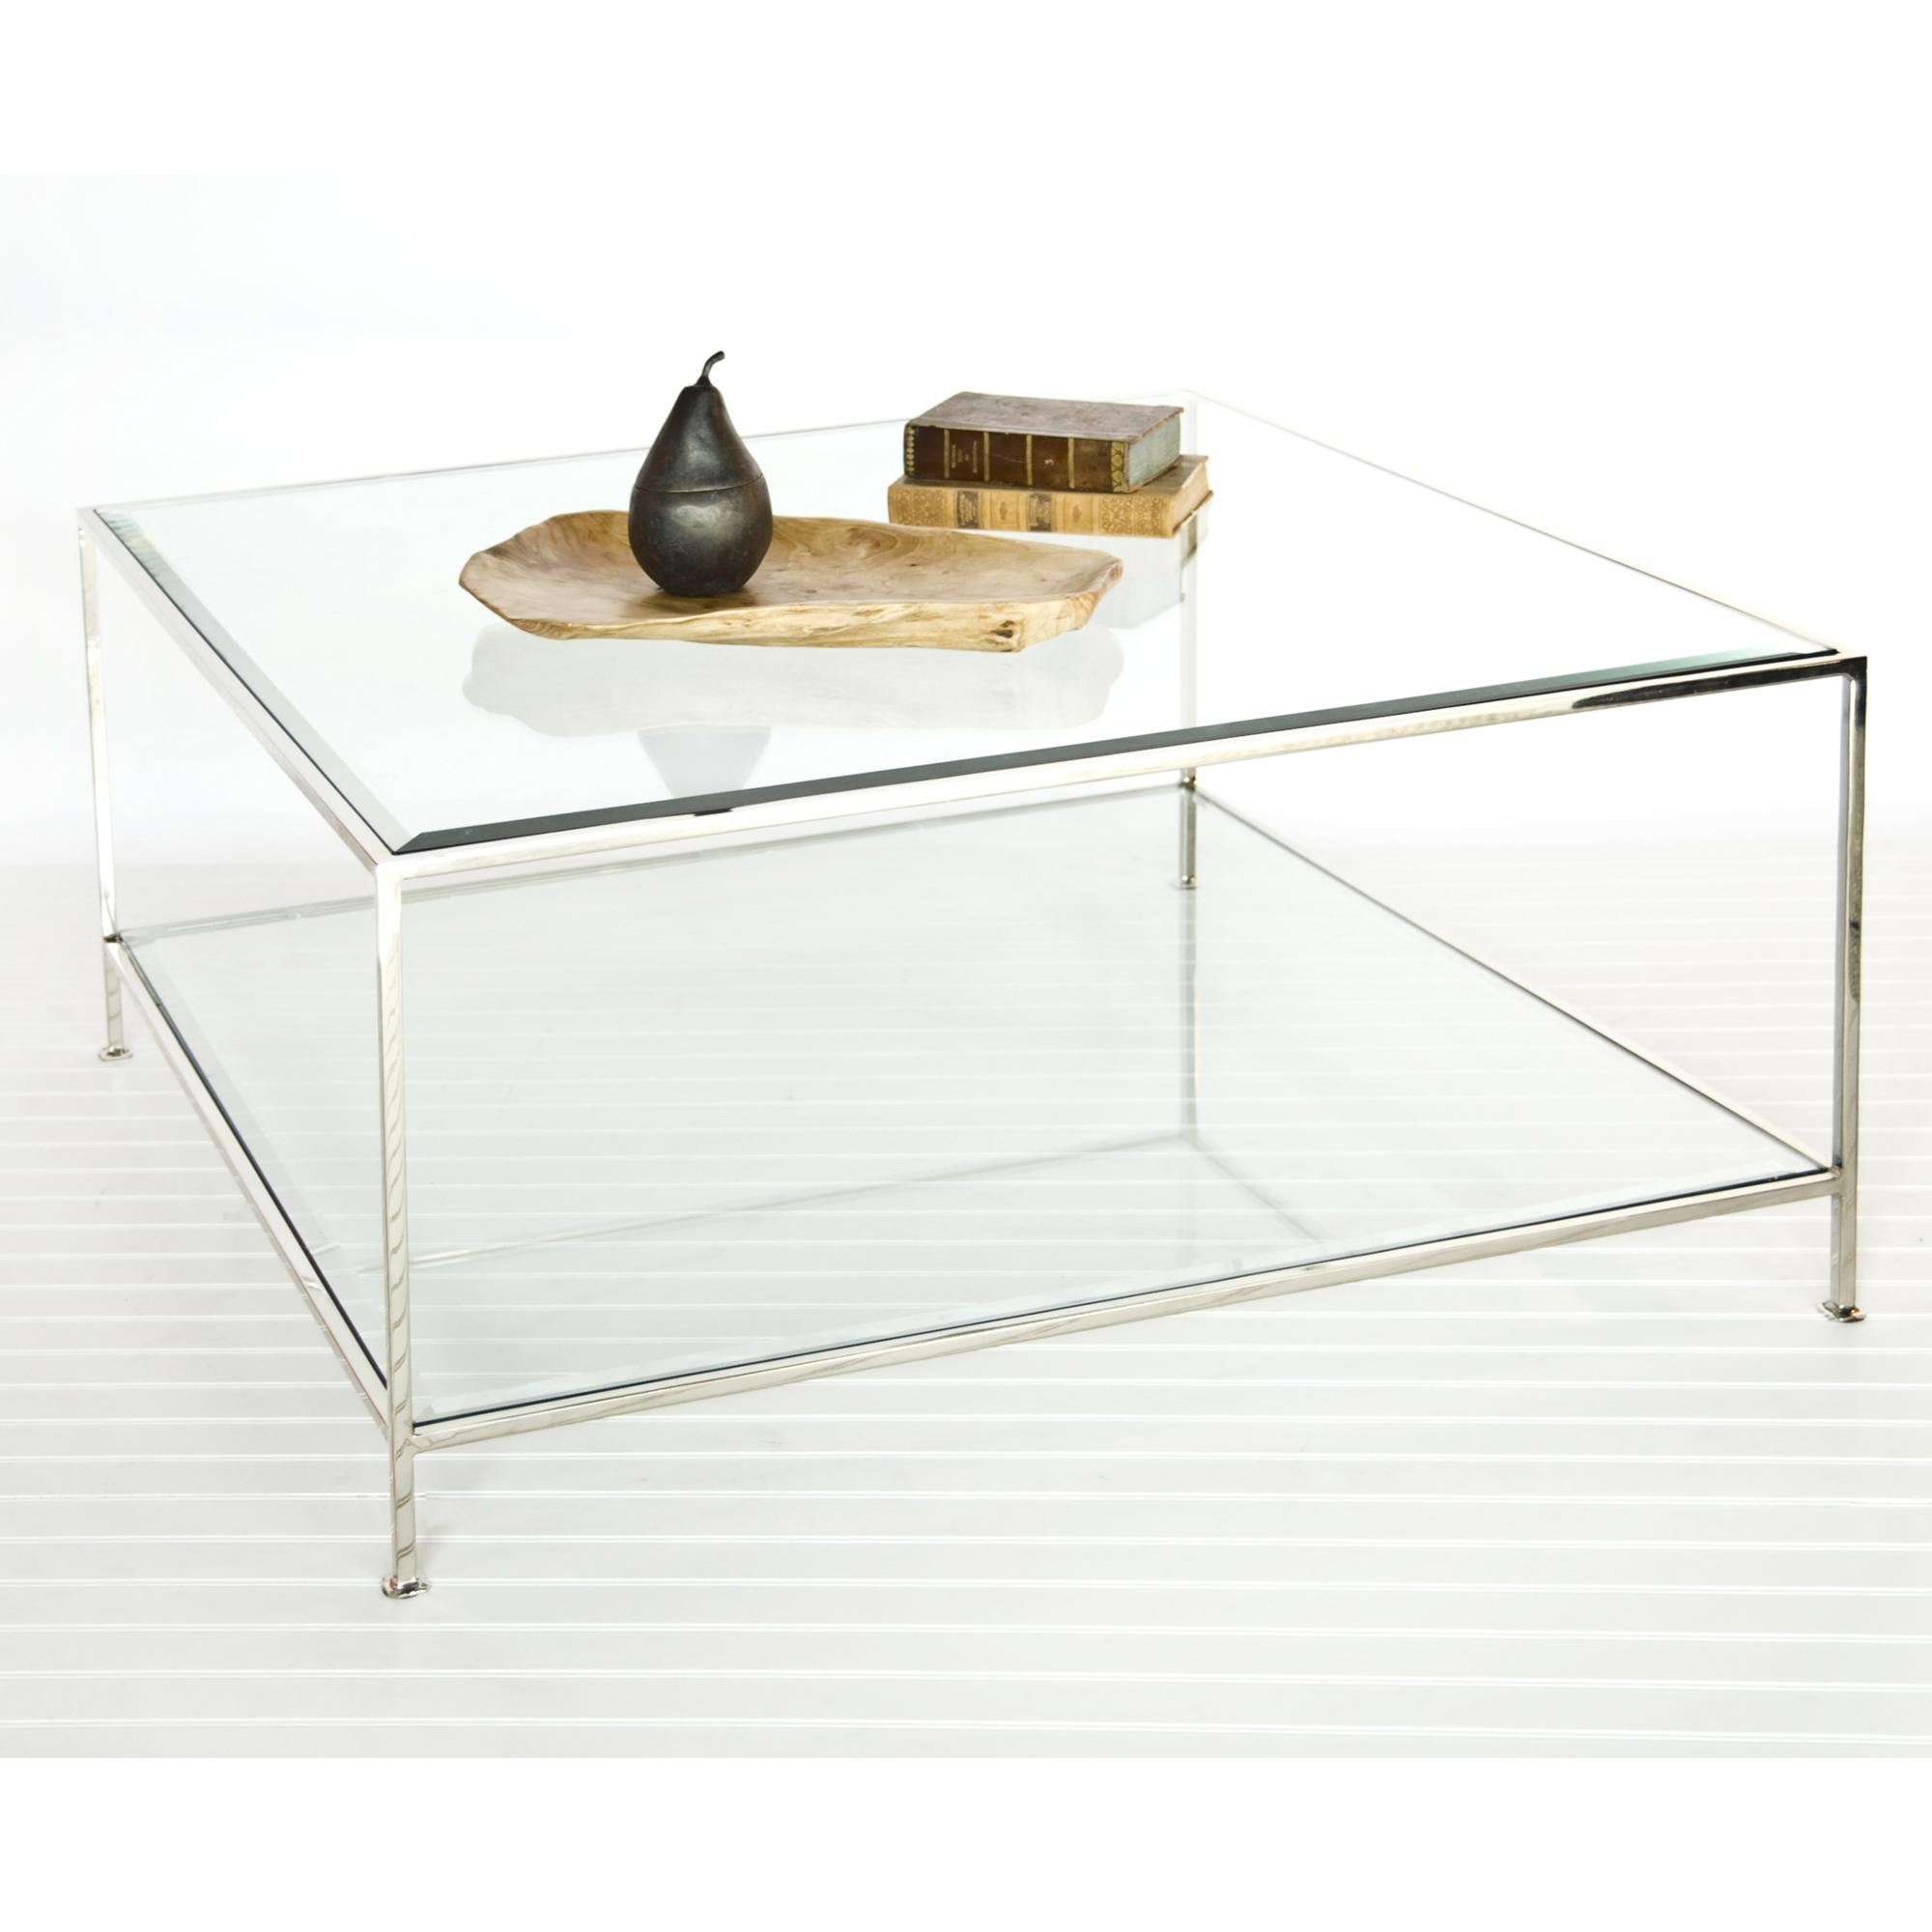 Image of: Glass Square Coffee Table